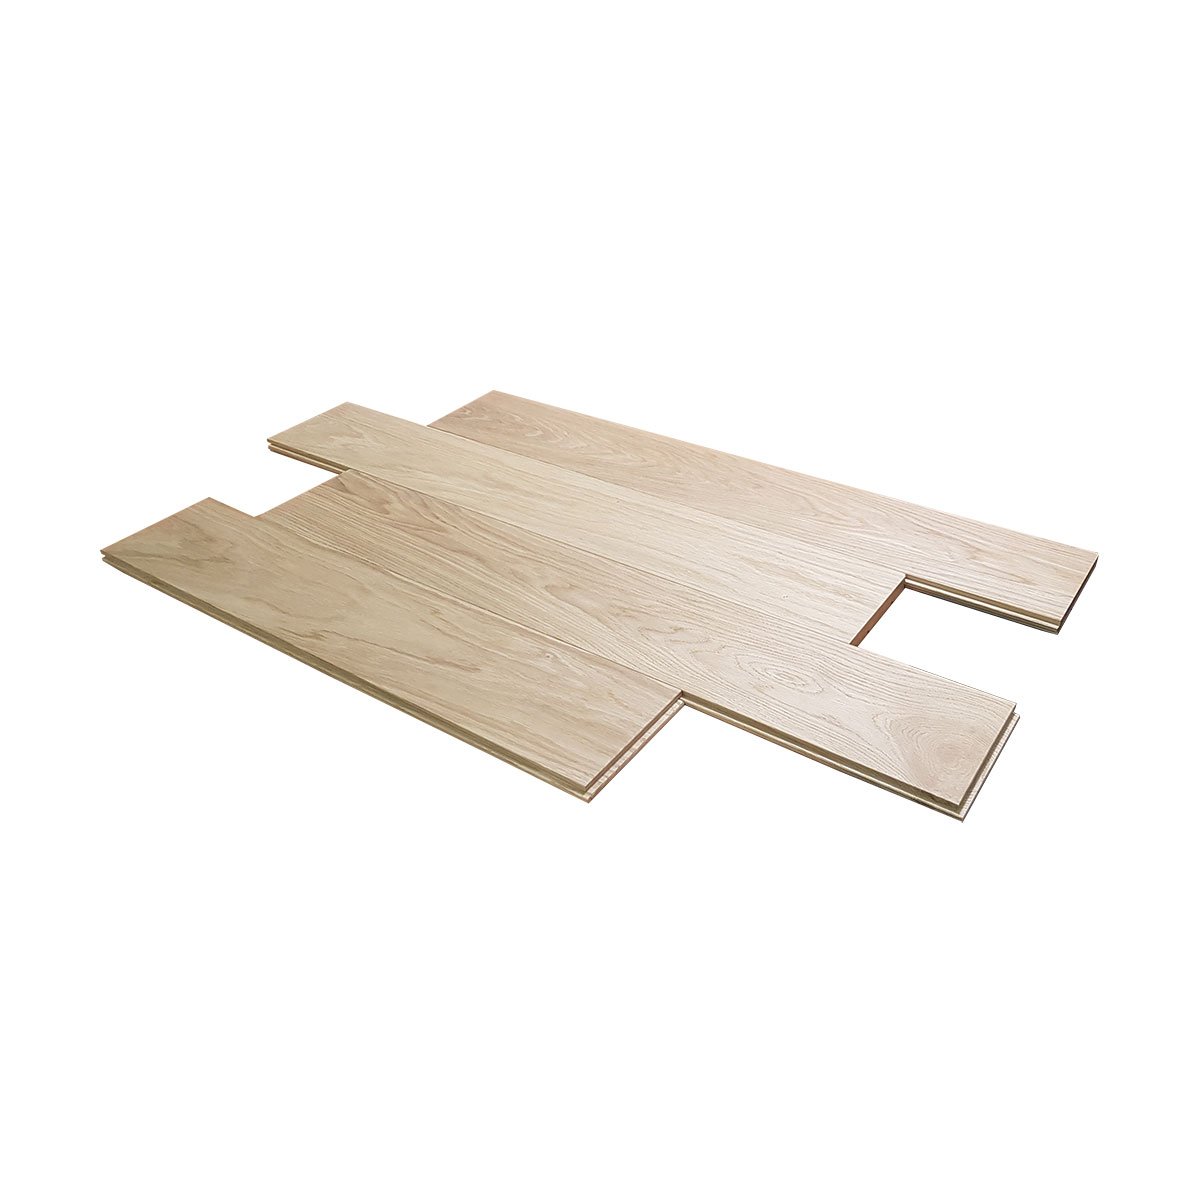 Large solid oak chopping board buy other oak furniture for Furniture board